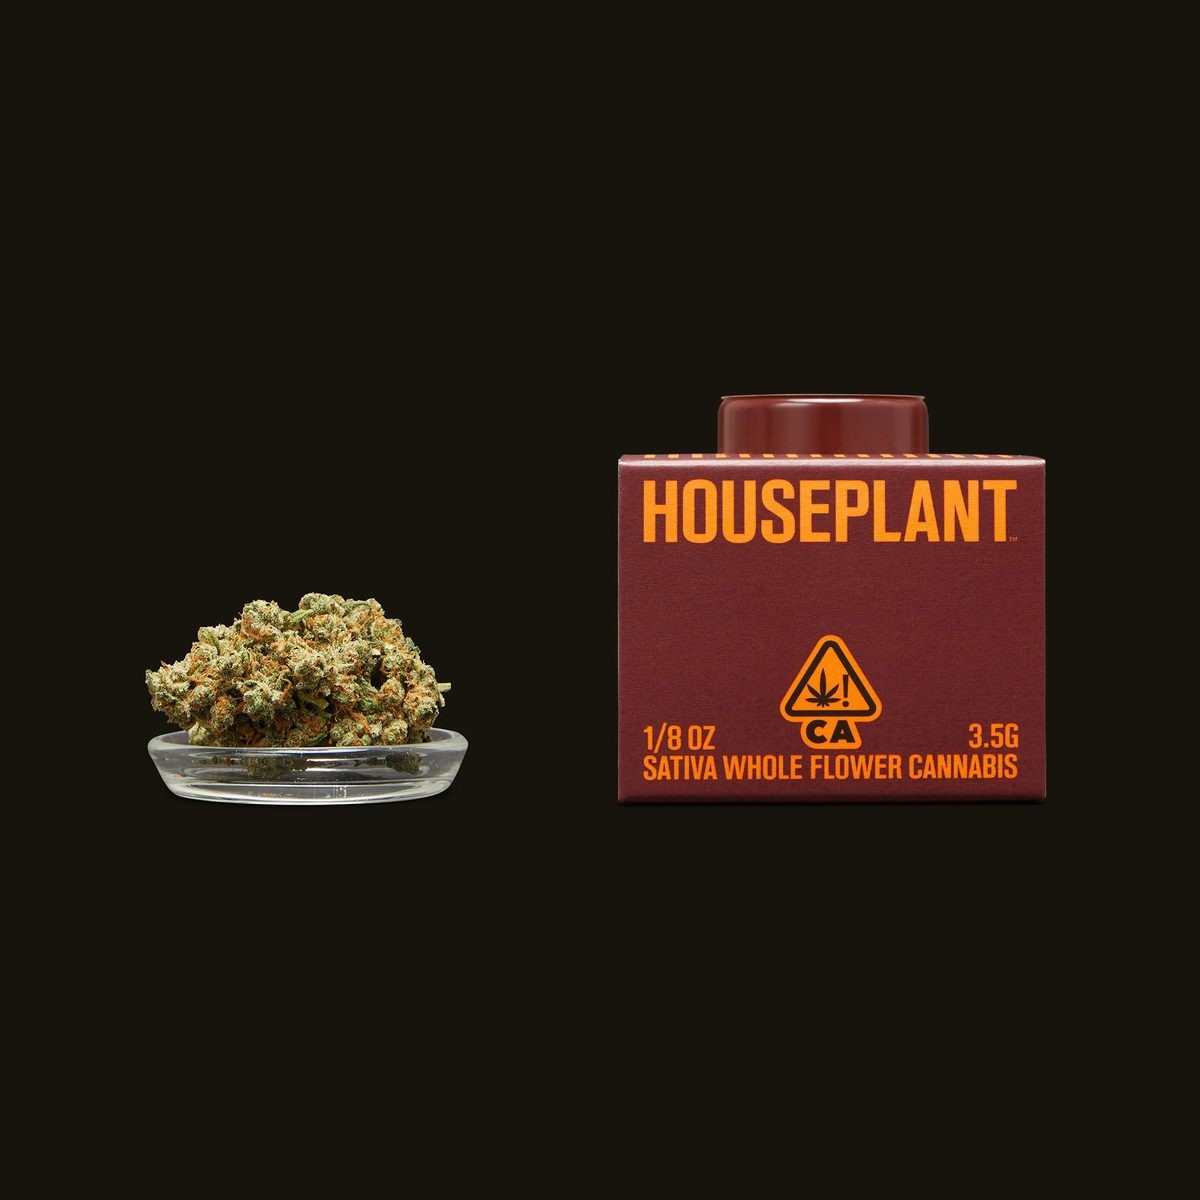 Houseplant's Weed Is Worth The Hype